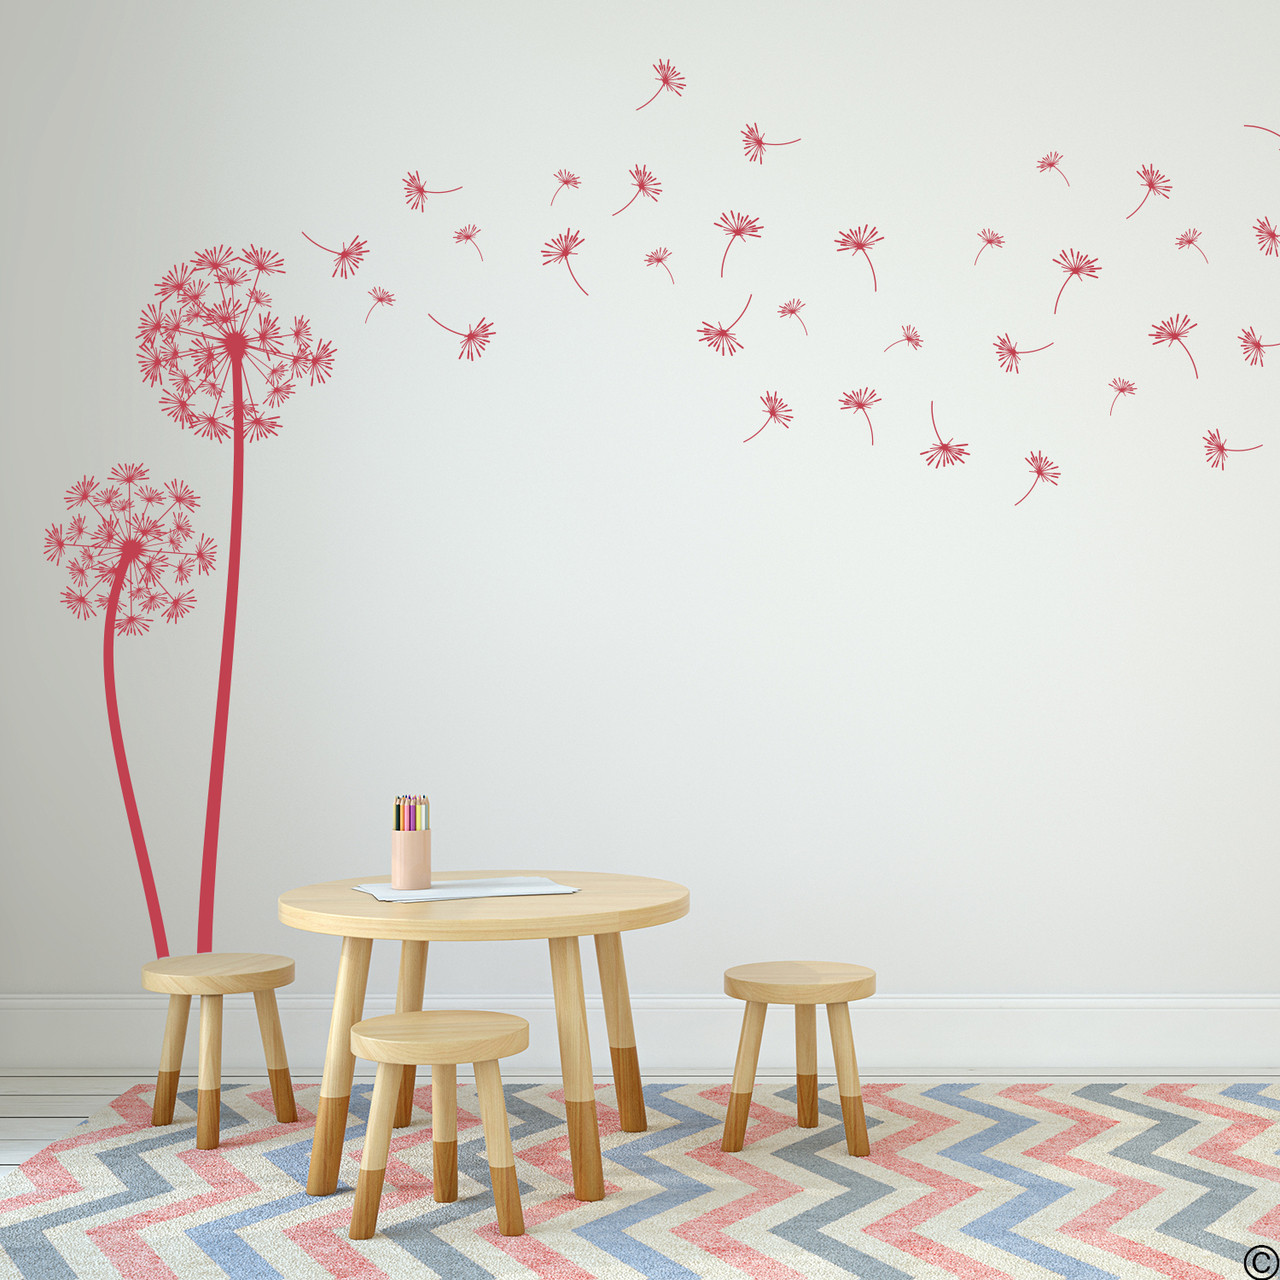 The Freya dandelion wall decal in dahlia red vinyl and placed in a kids playroom.